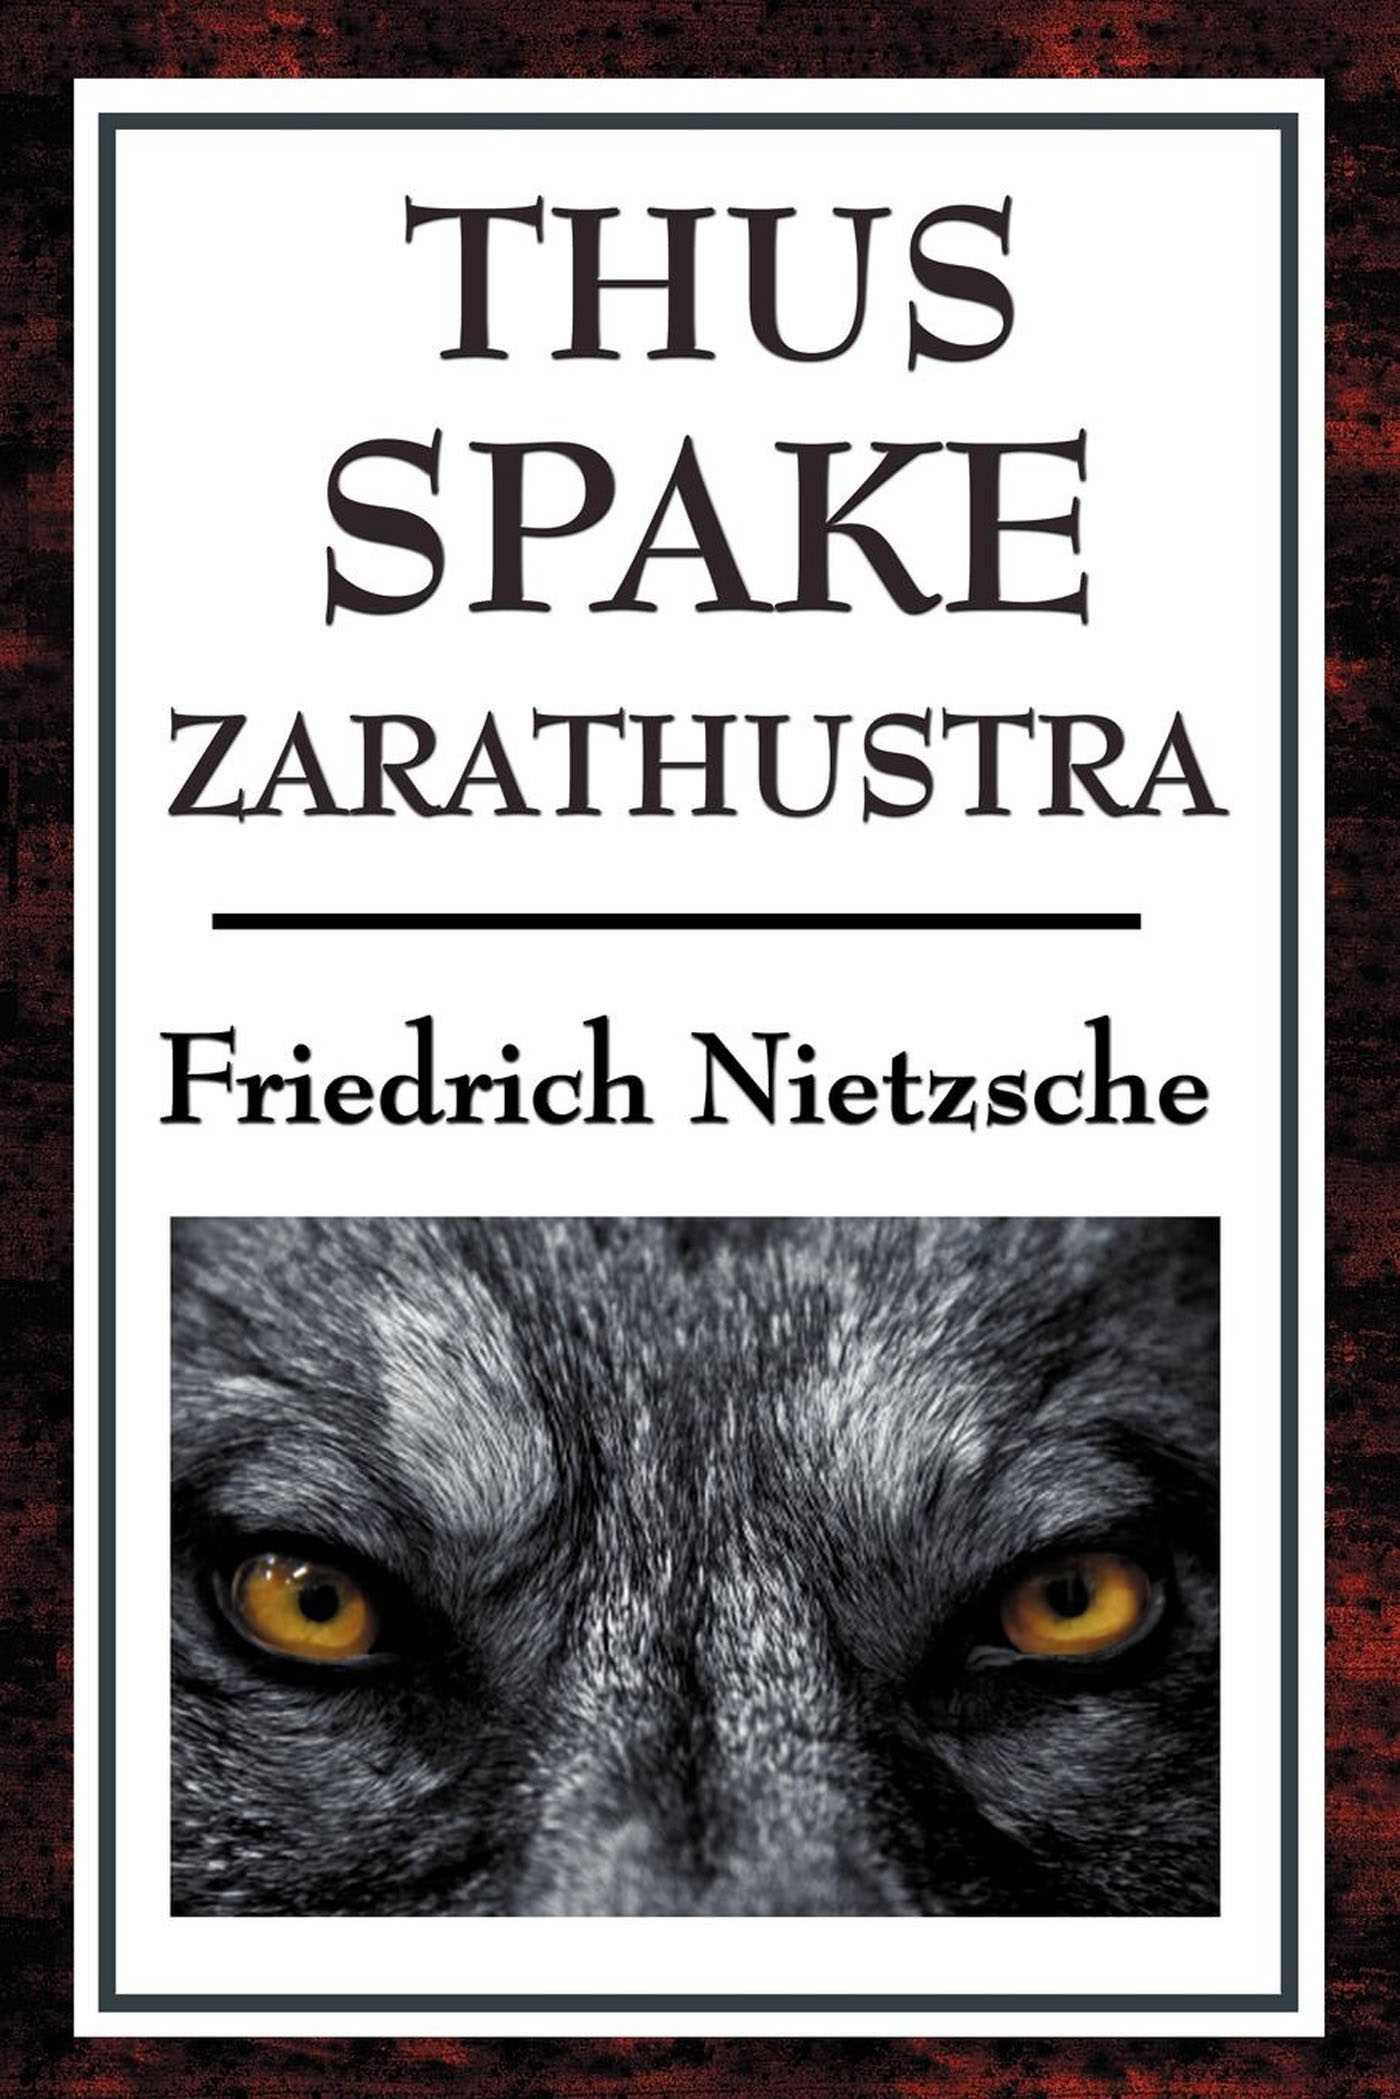 zarathustra in nietzsche's typology Nietzsche's formula for this point of  that of the speech 'on the tarantulas' in zarathustra:  nietzsche's typology aims to elucidate and.